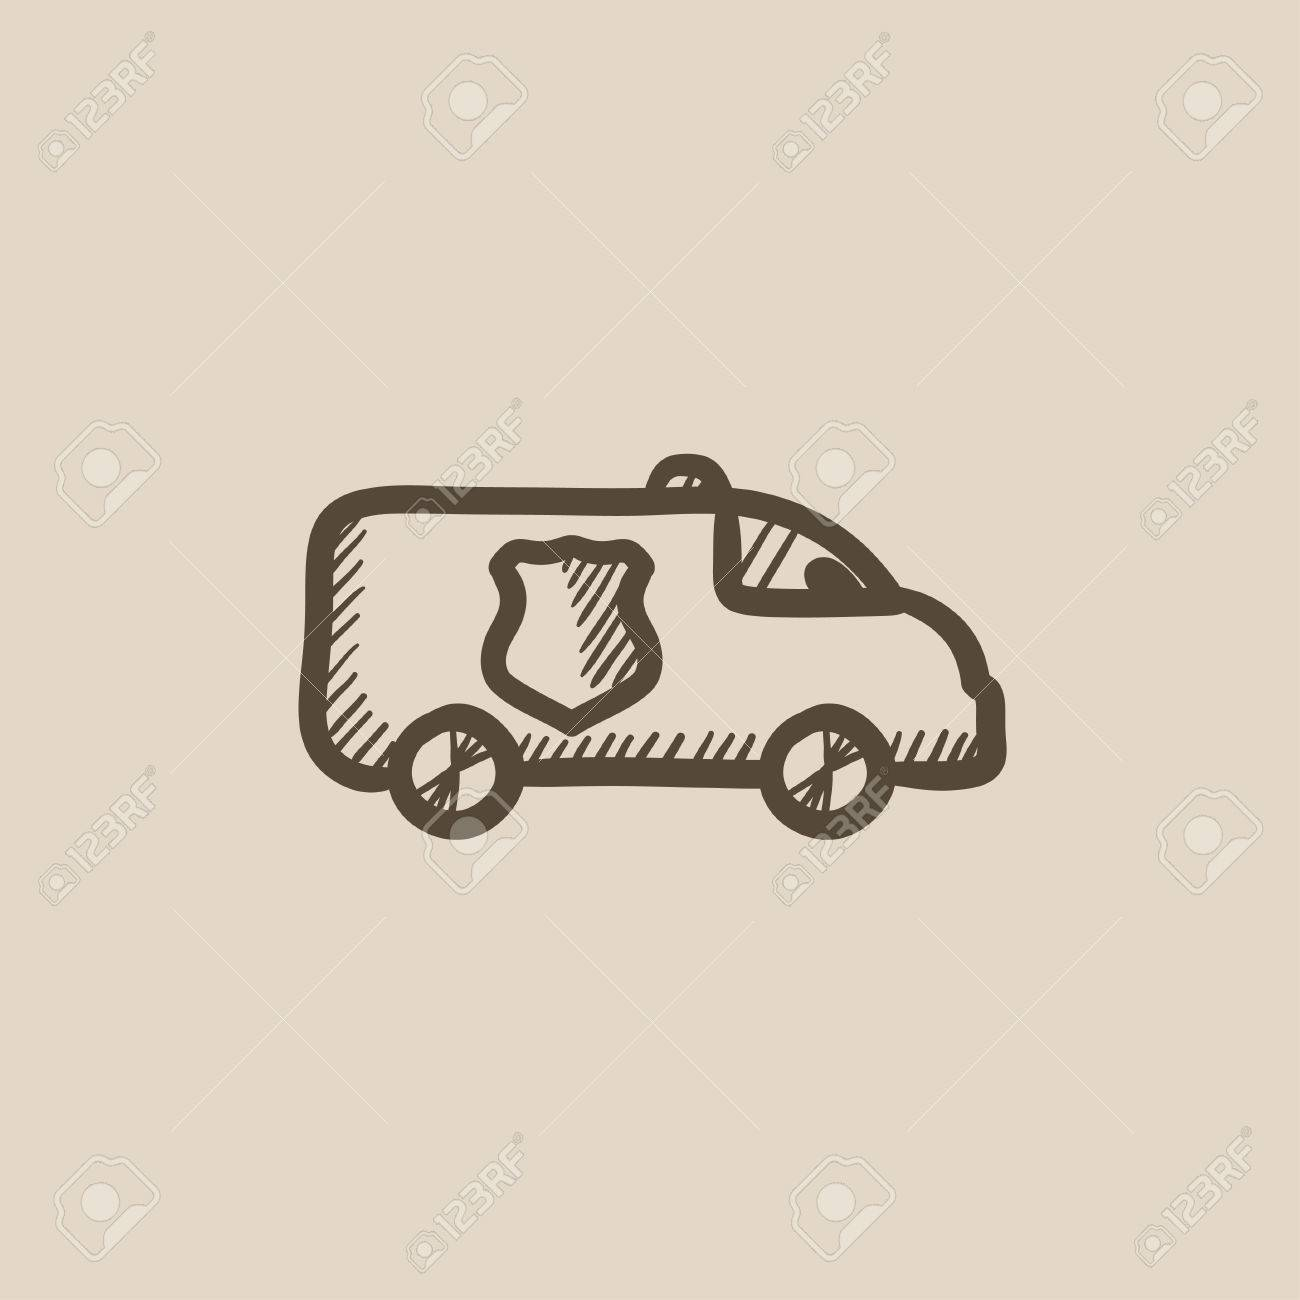 Police Car Website >> Police Car Vector Sketch Icon Isolated On Background Hand Drawn Police Car Icon Police Car Sketch Icon For Infographic Website Or App